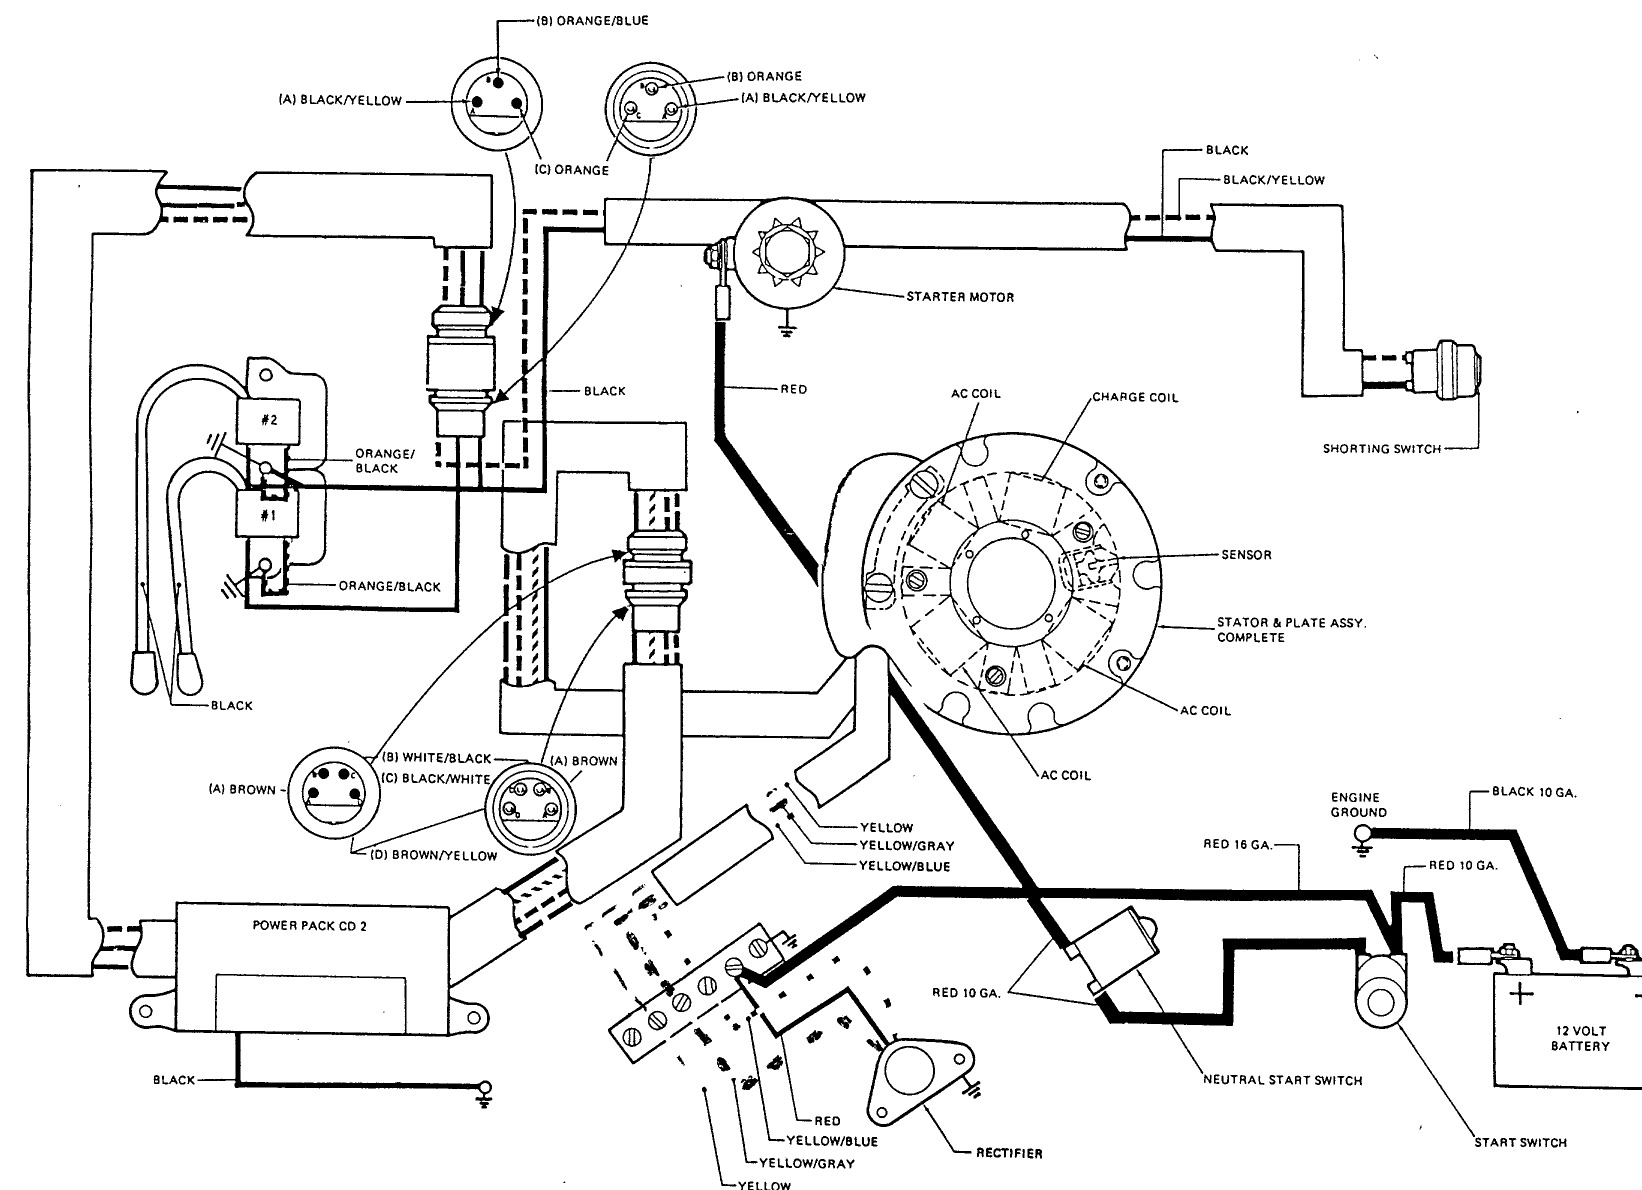 Omc Trolling Motor Wiring Diagram Free Picture | Wiring Diagram on evinrude trolling motor parts diagram, omc tachometer wiring diagram, omc motor parts, motorguide trolling motor parts diagram, 3 phase motor starter wiring diagram, omc sterndrive wiring diagram, omc parts diagram, johnson trolling motor parts diagram, omc evinrude trolling motors, motorguide trolling motor mount diagram, omc trolling motor specifications, cutler hammer motor starter wiring diagram, omc trolling motor plug, 12 24 trolling motor diagram, omc trim wiring diagram,